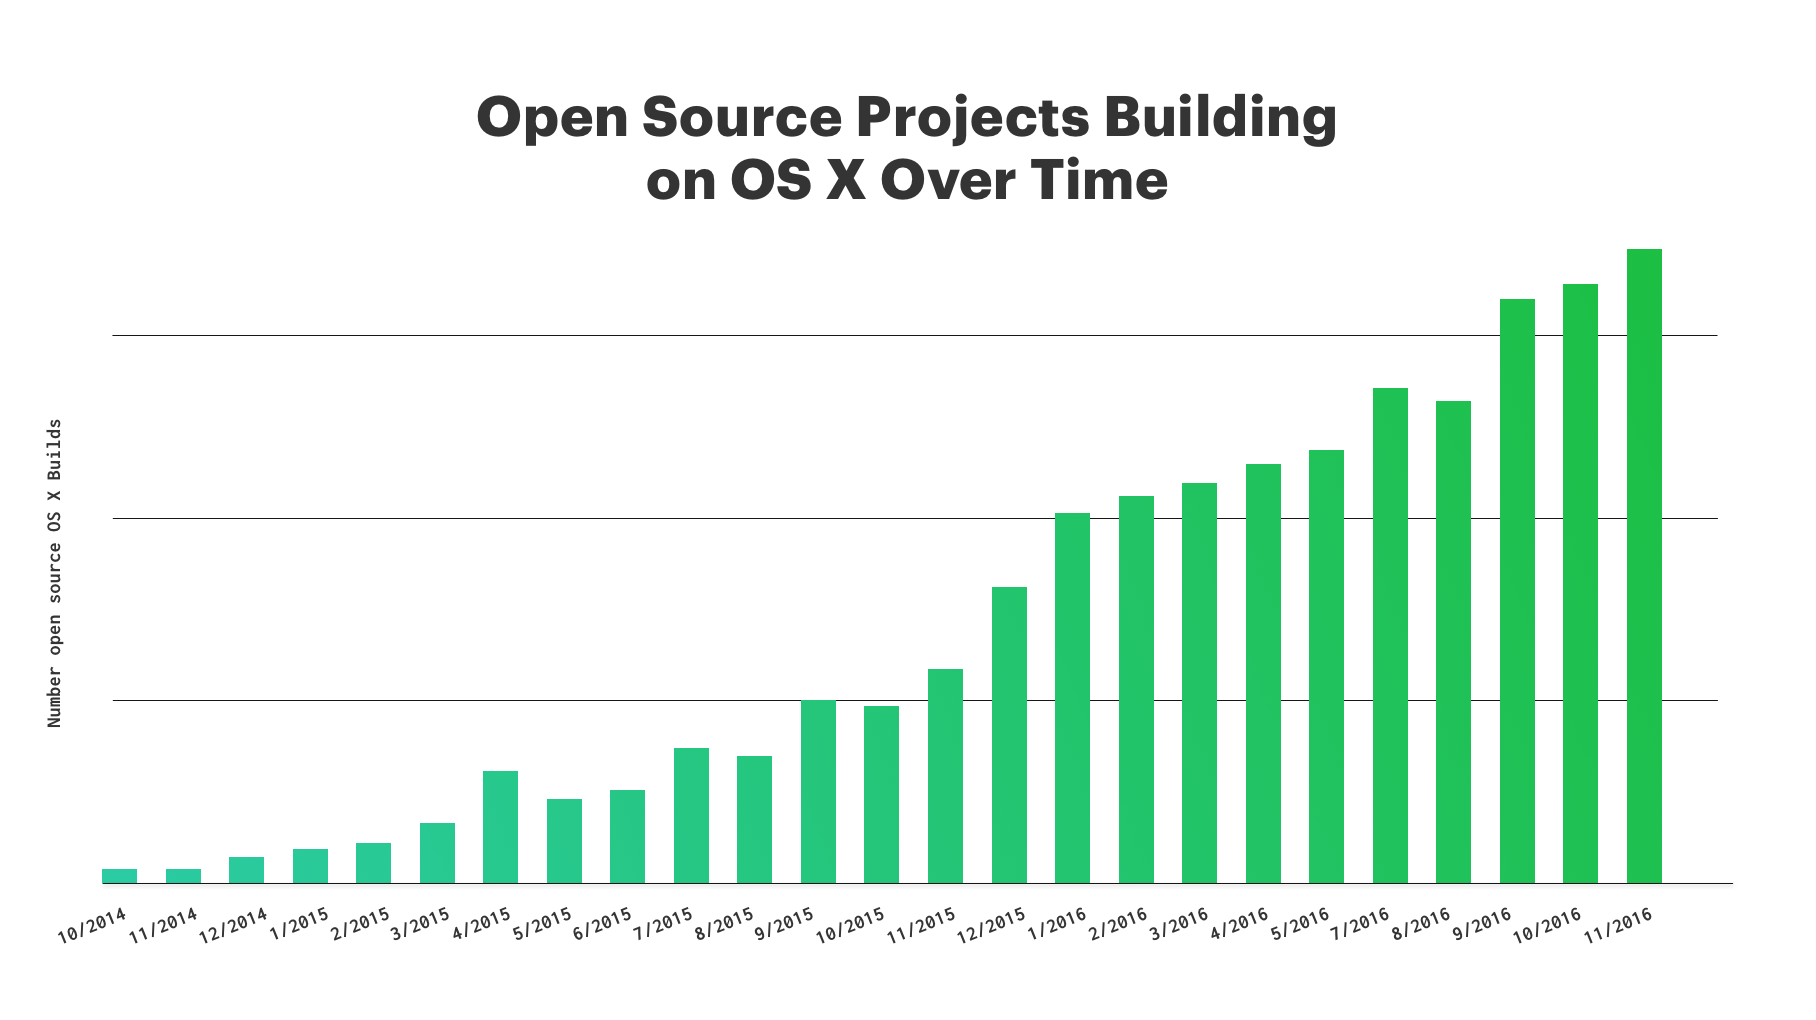 Open source builds for OS X on CircleCI are increasing over time